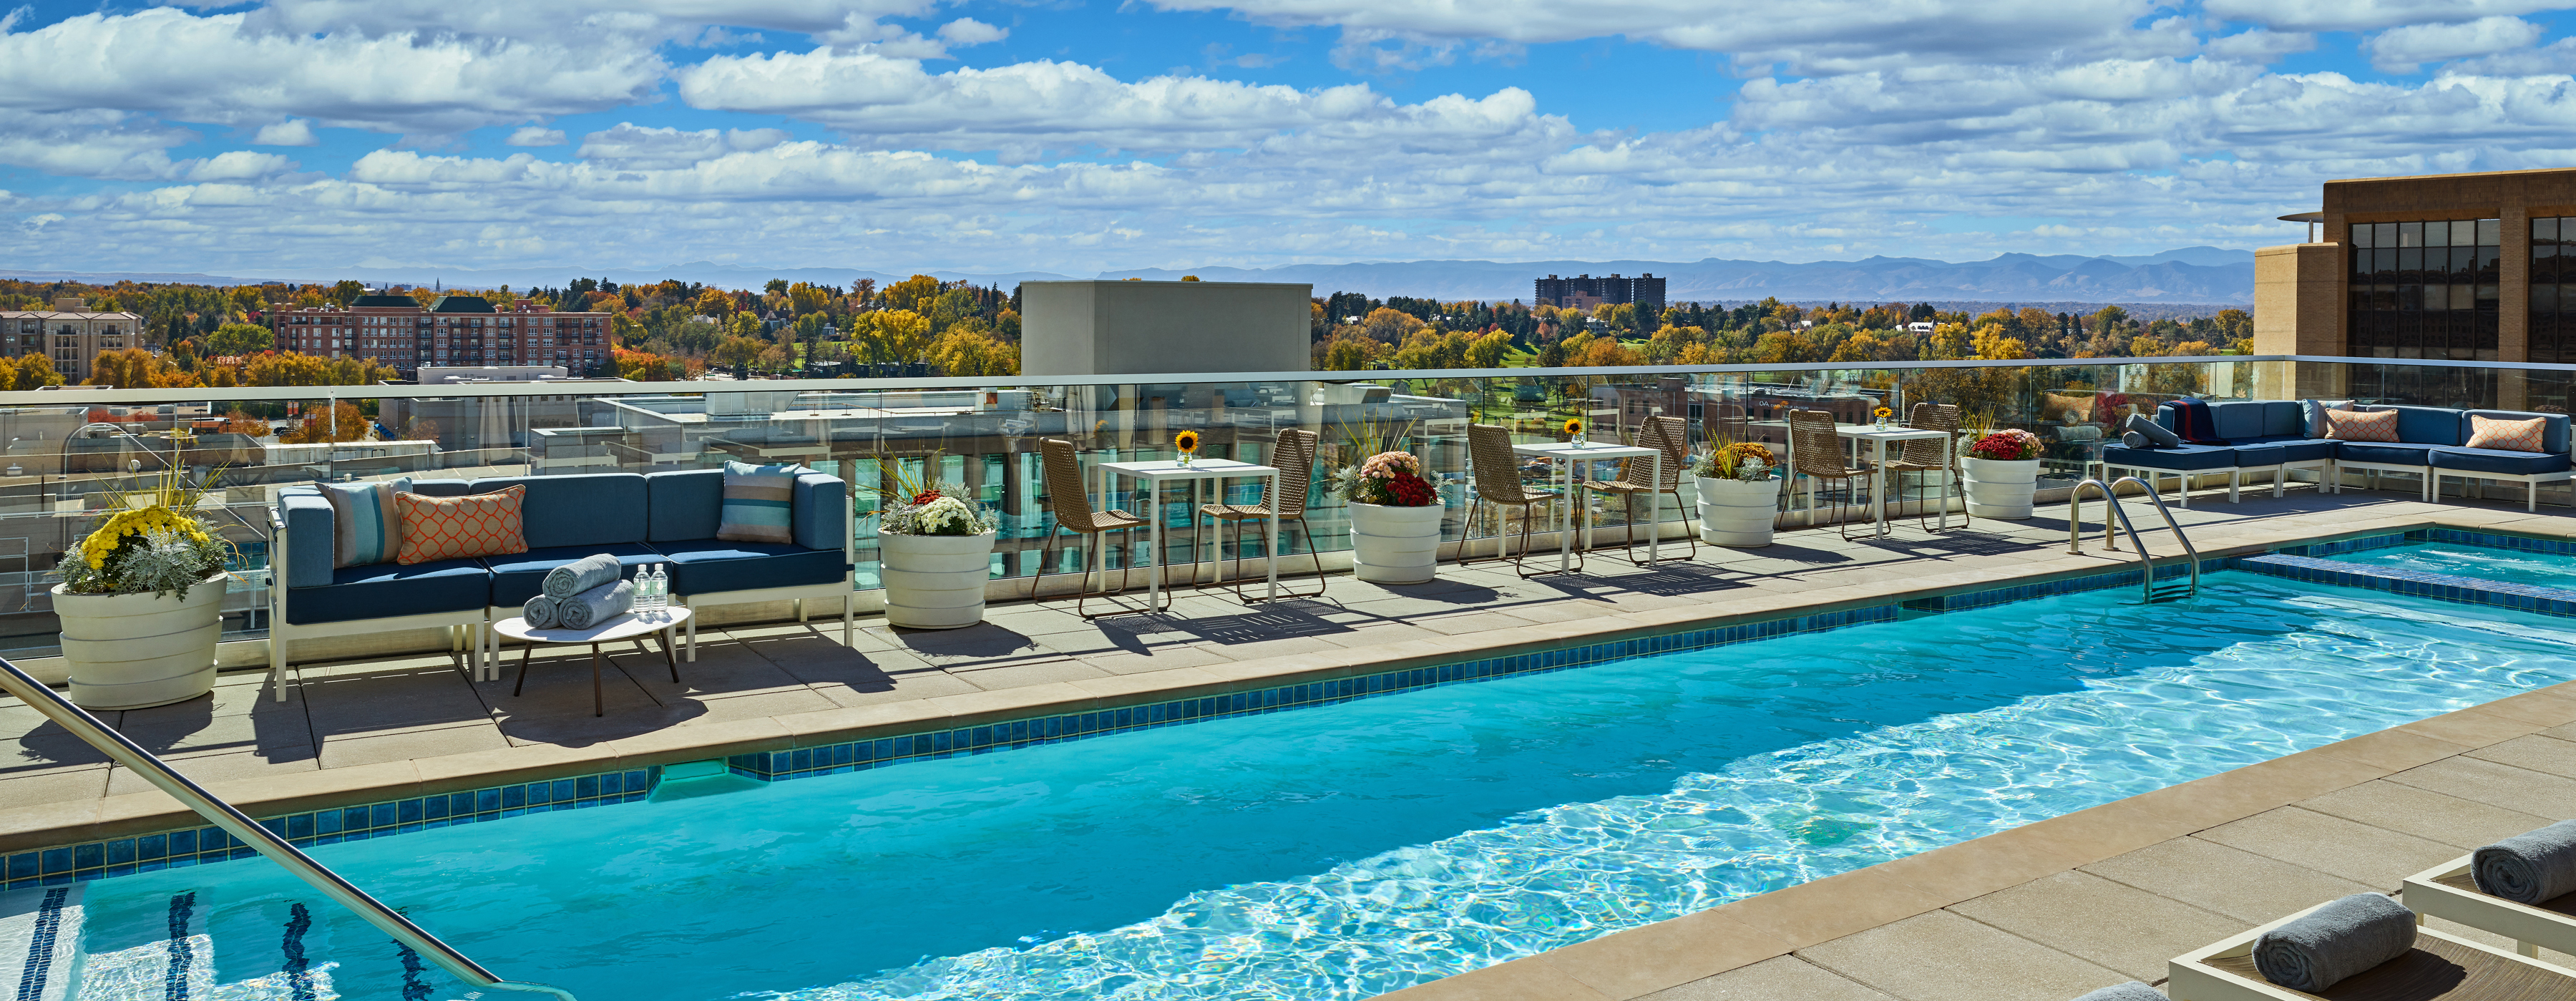 Kick Back Relax At Denver S Hotel Rooftop Pools Bars Visit Denver Blog